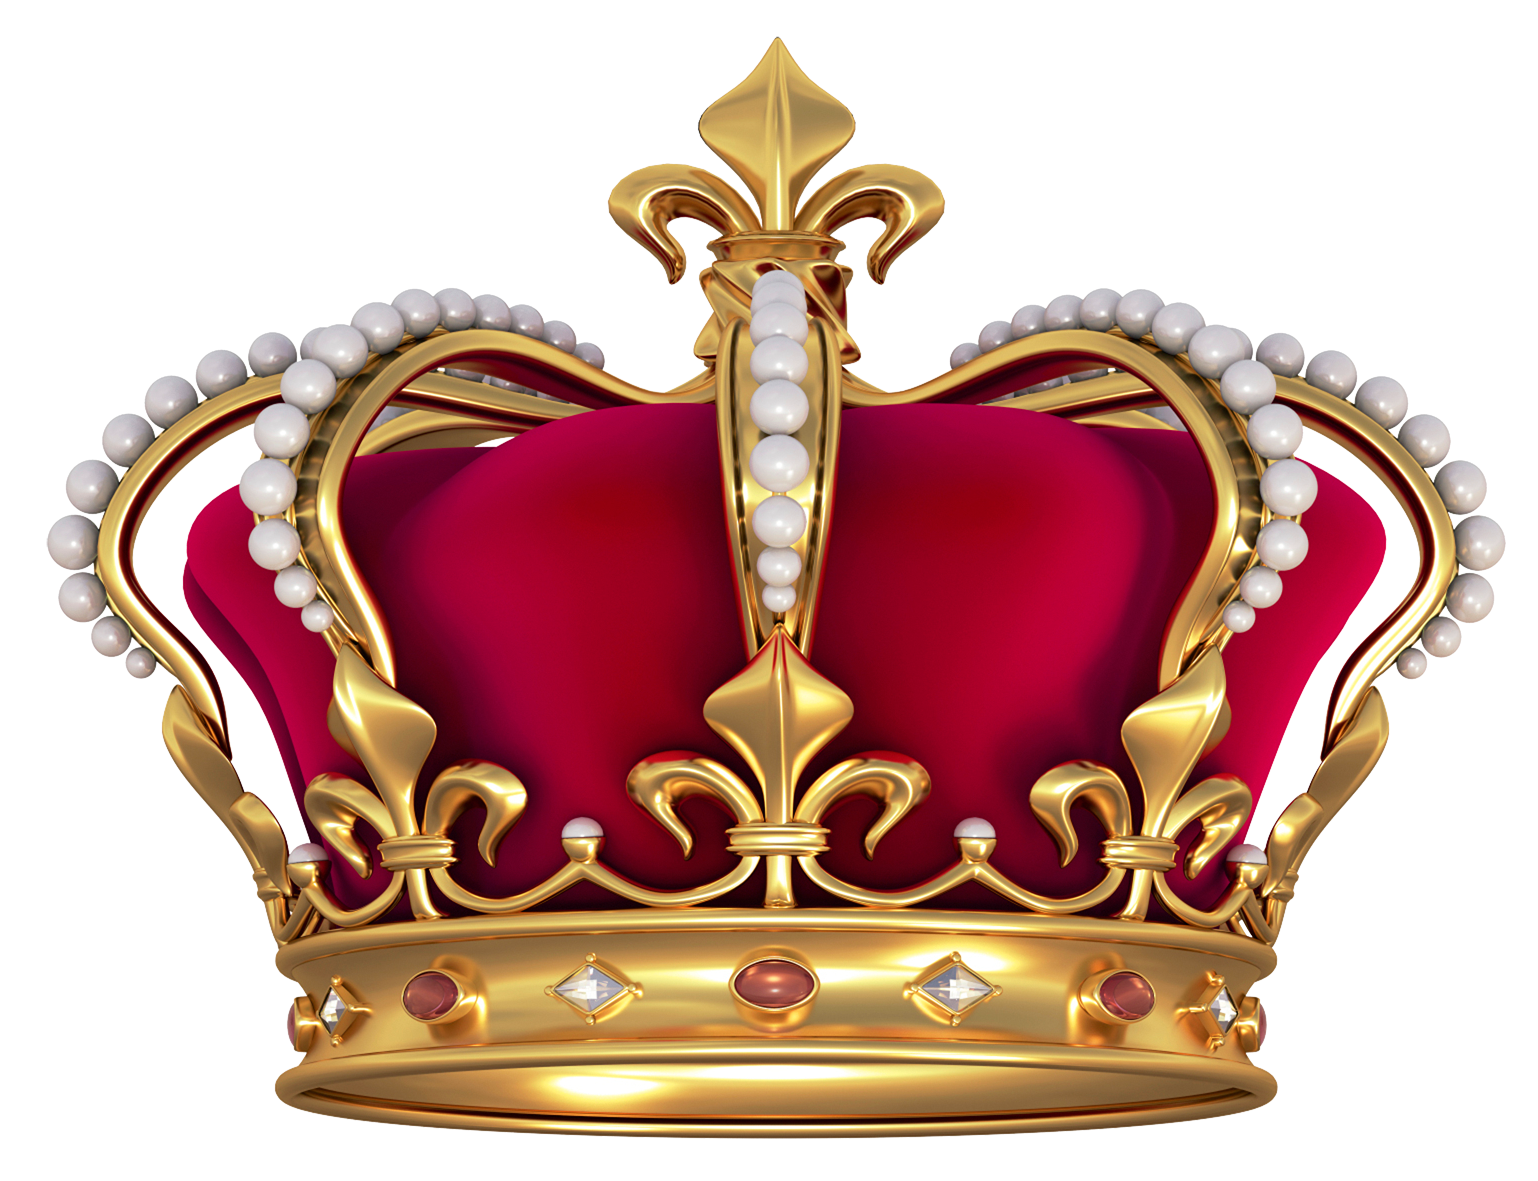 Gold purple crown clipart jpg black and white stock Red Gold Crown with Pearls PNG Clipart Picture | Crafting - Regal ... jpg black and white stock